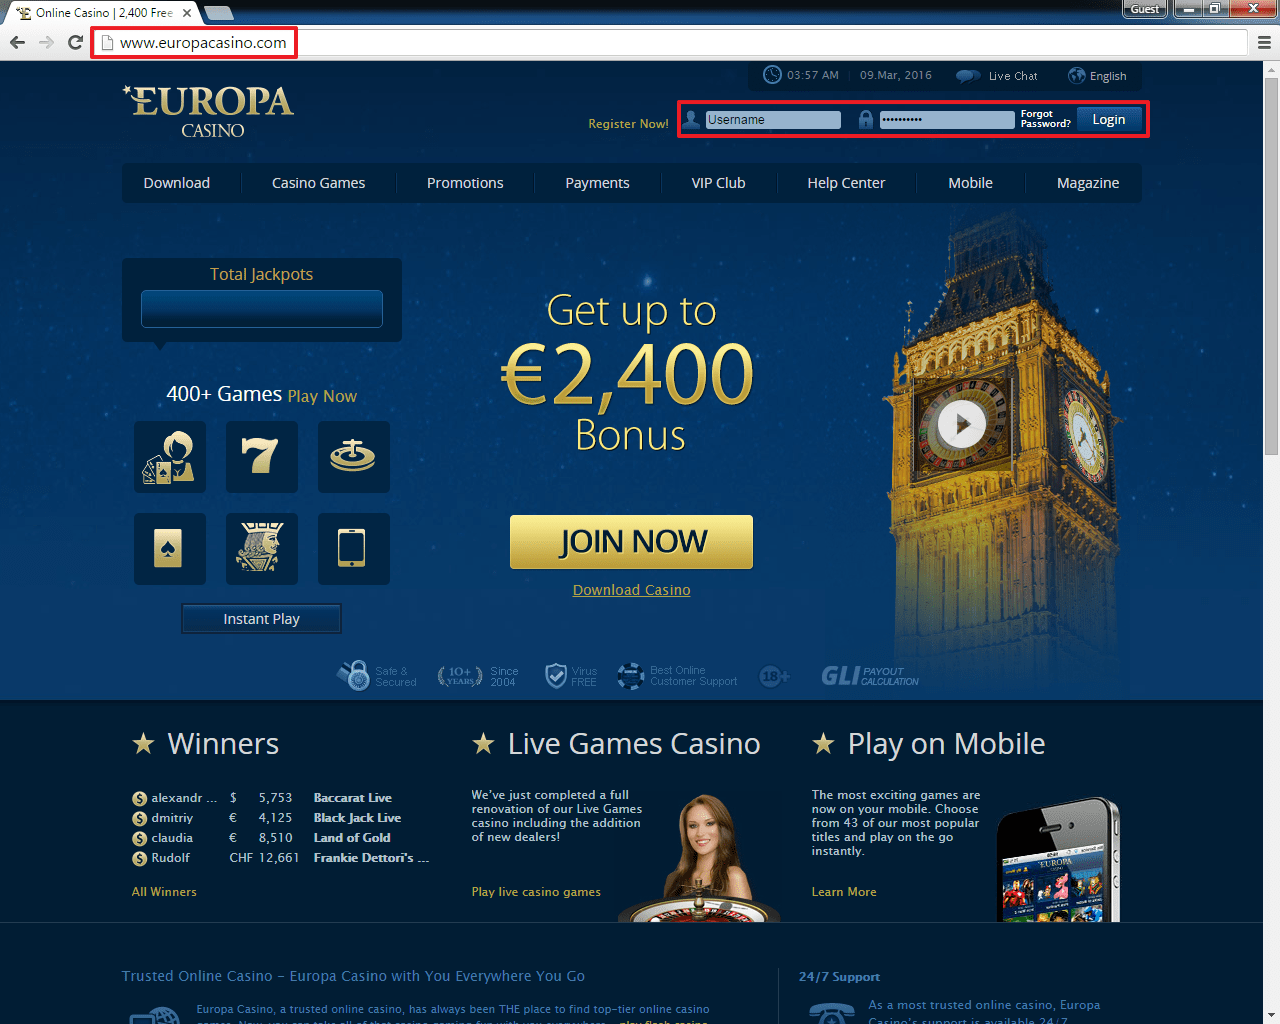 europa casino online casino and gaming